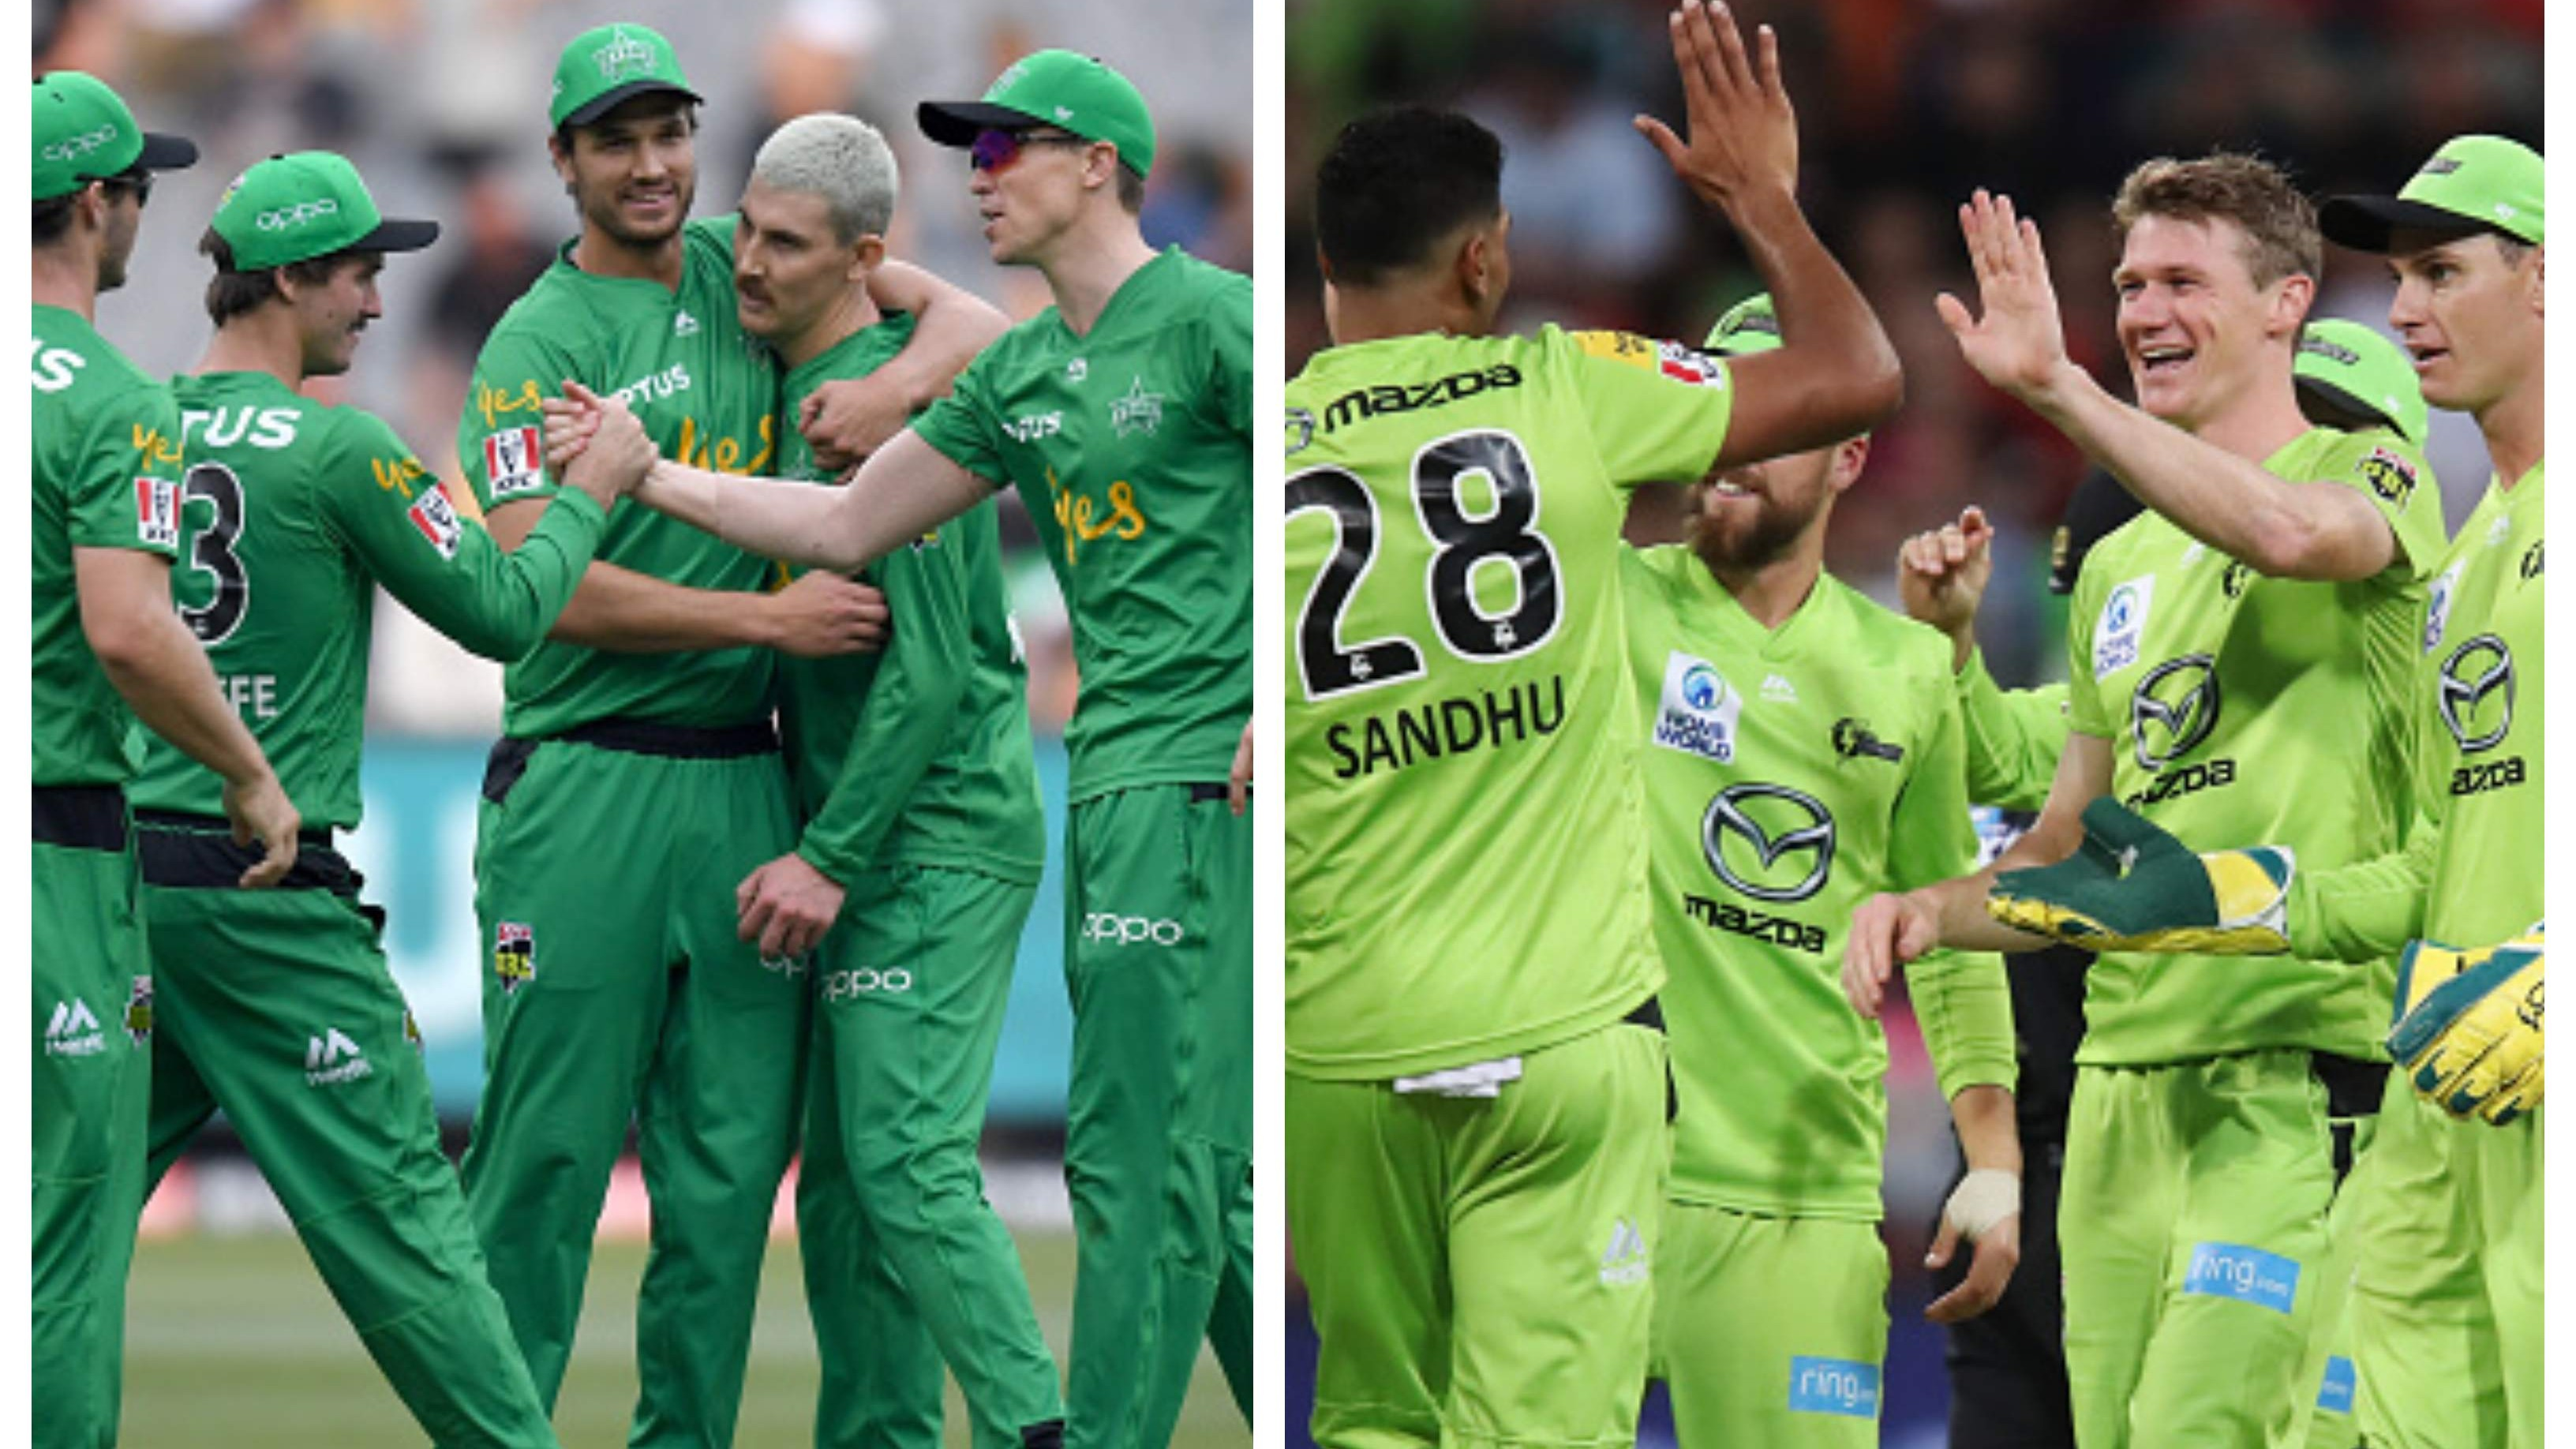 BBL 09: Stars win a low-scoring affair versus Scorchers; Thunder beat Sixers in a rain-marred contest